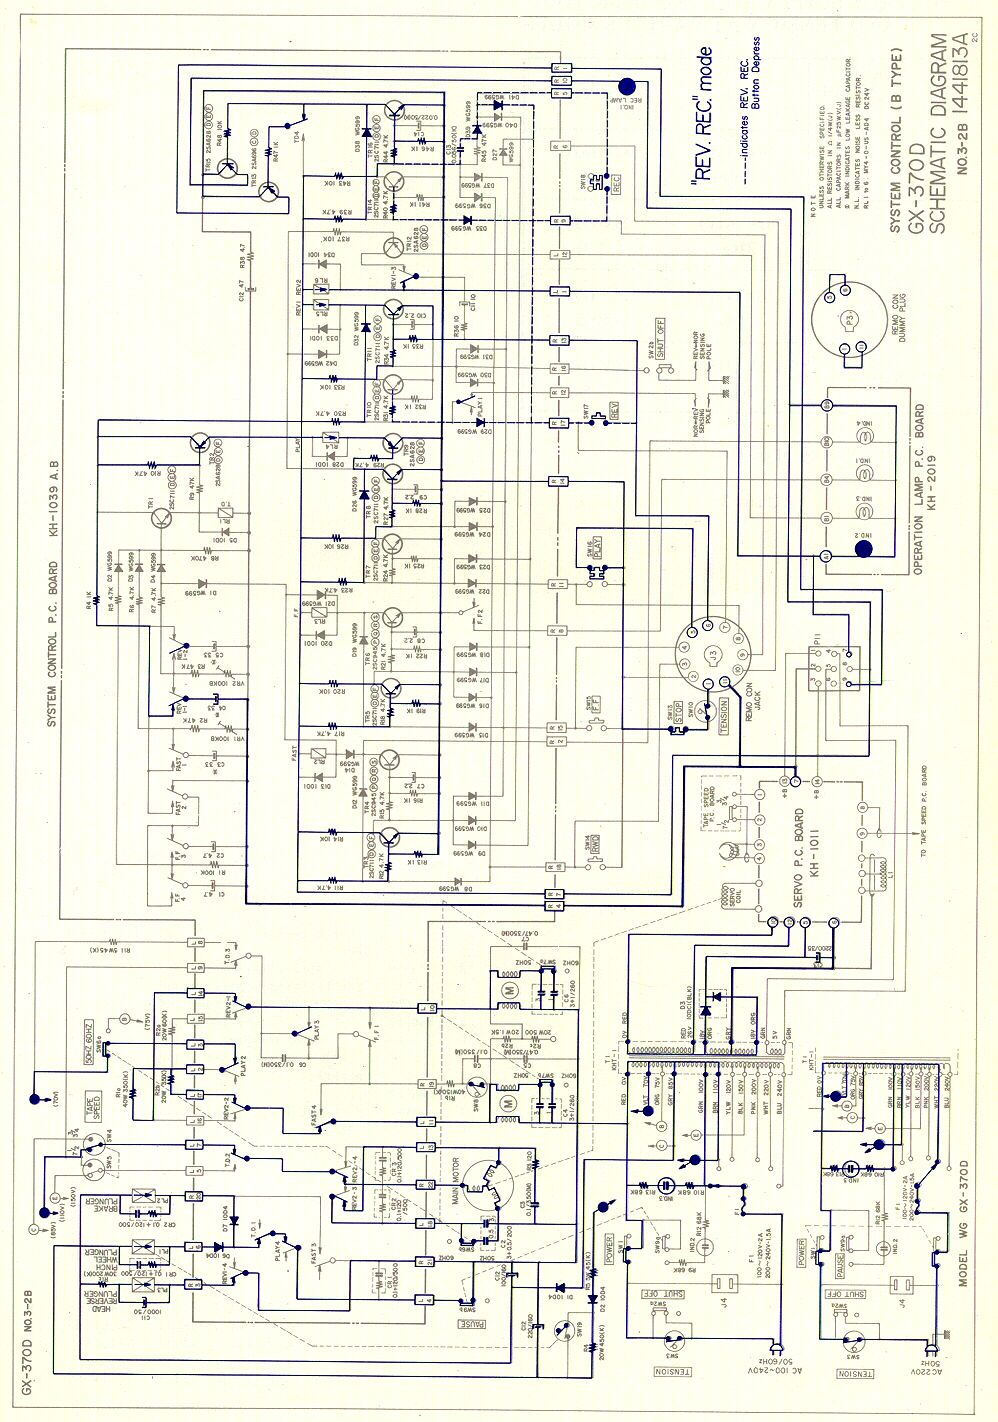 Akai Gx 370d Service Manual Click On Schematic To Magnify X2